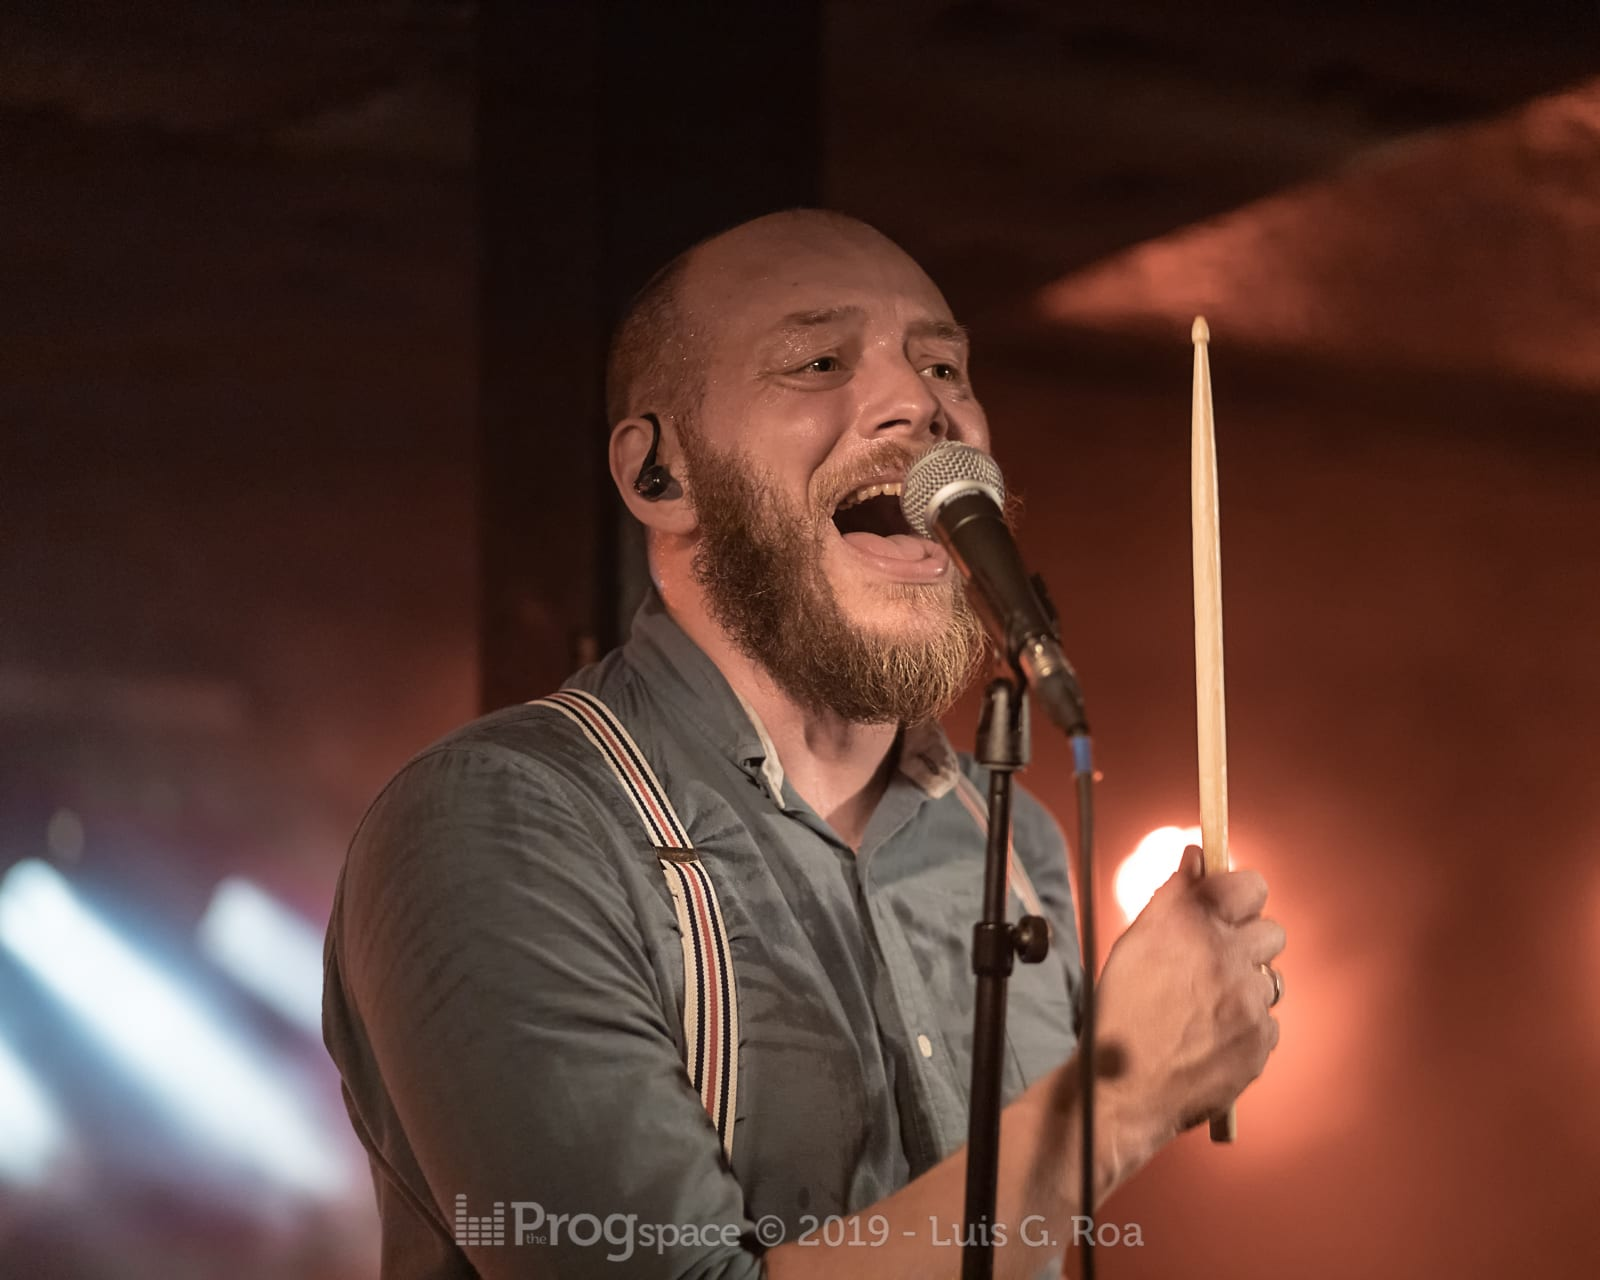 Vulture Industries live in Hamburg, 2 May 2019